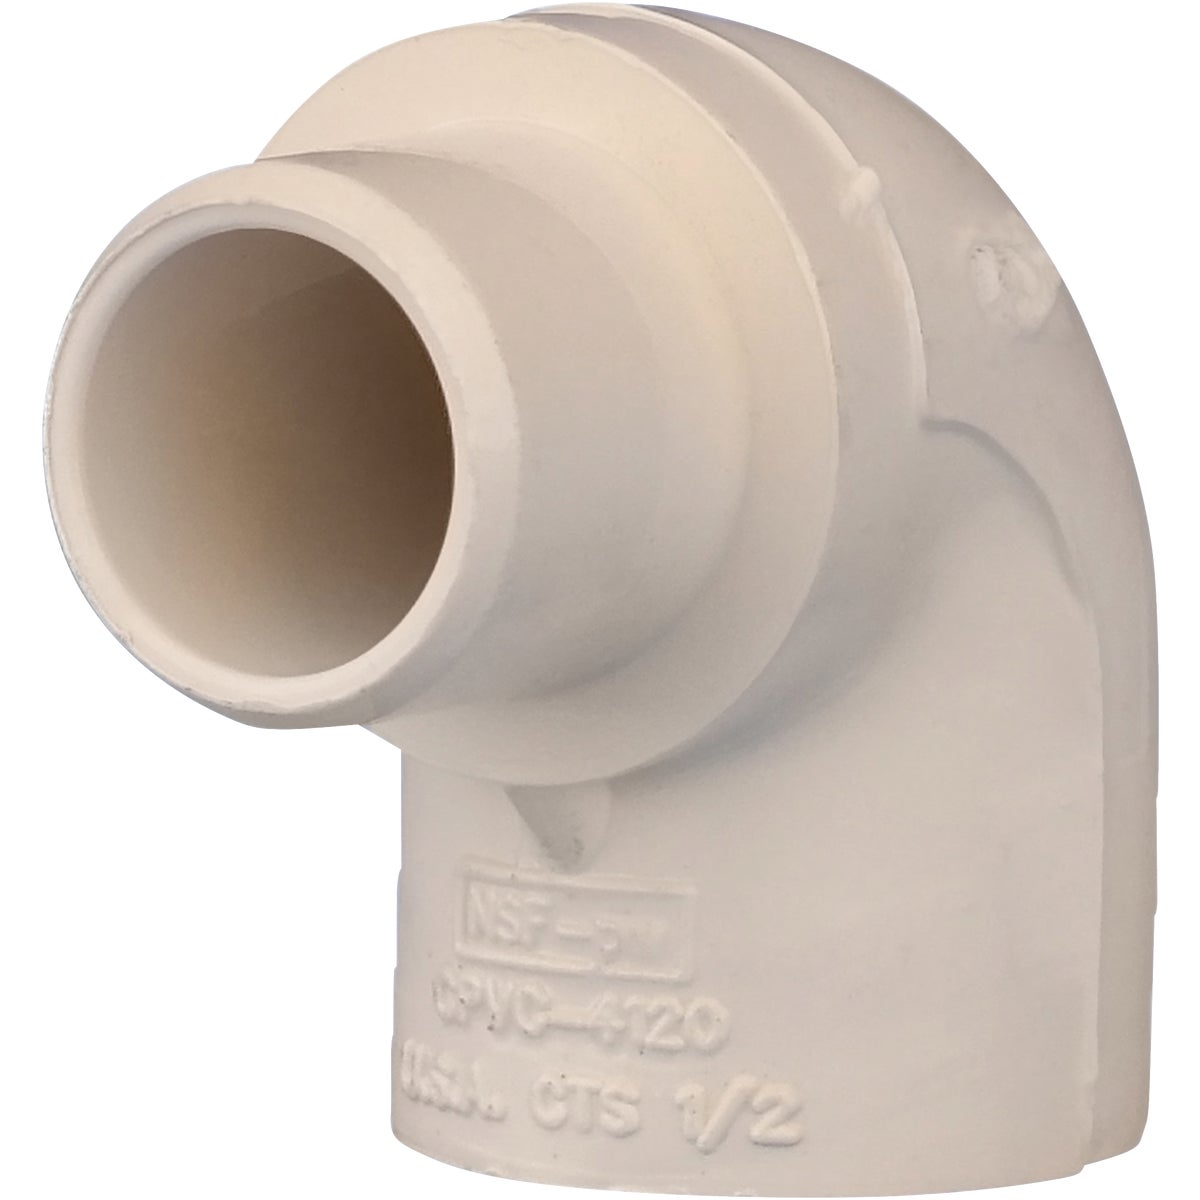 "1/2"" CPVC 90D STRT ELBOW - 52905 by Genova Inc"